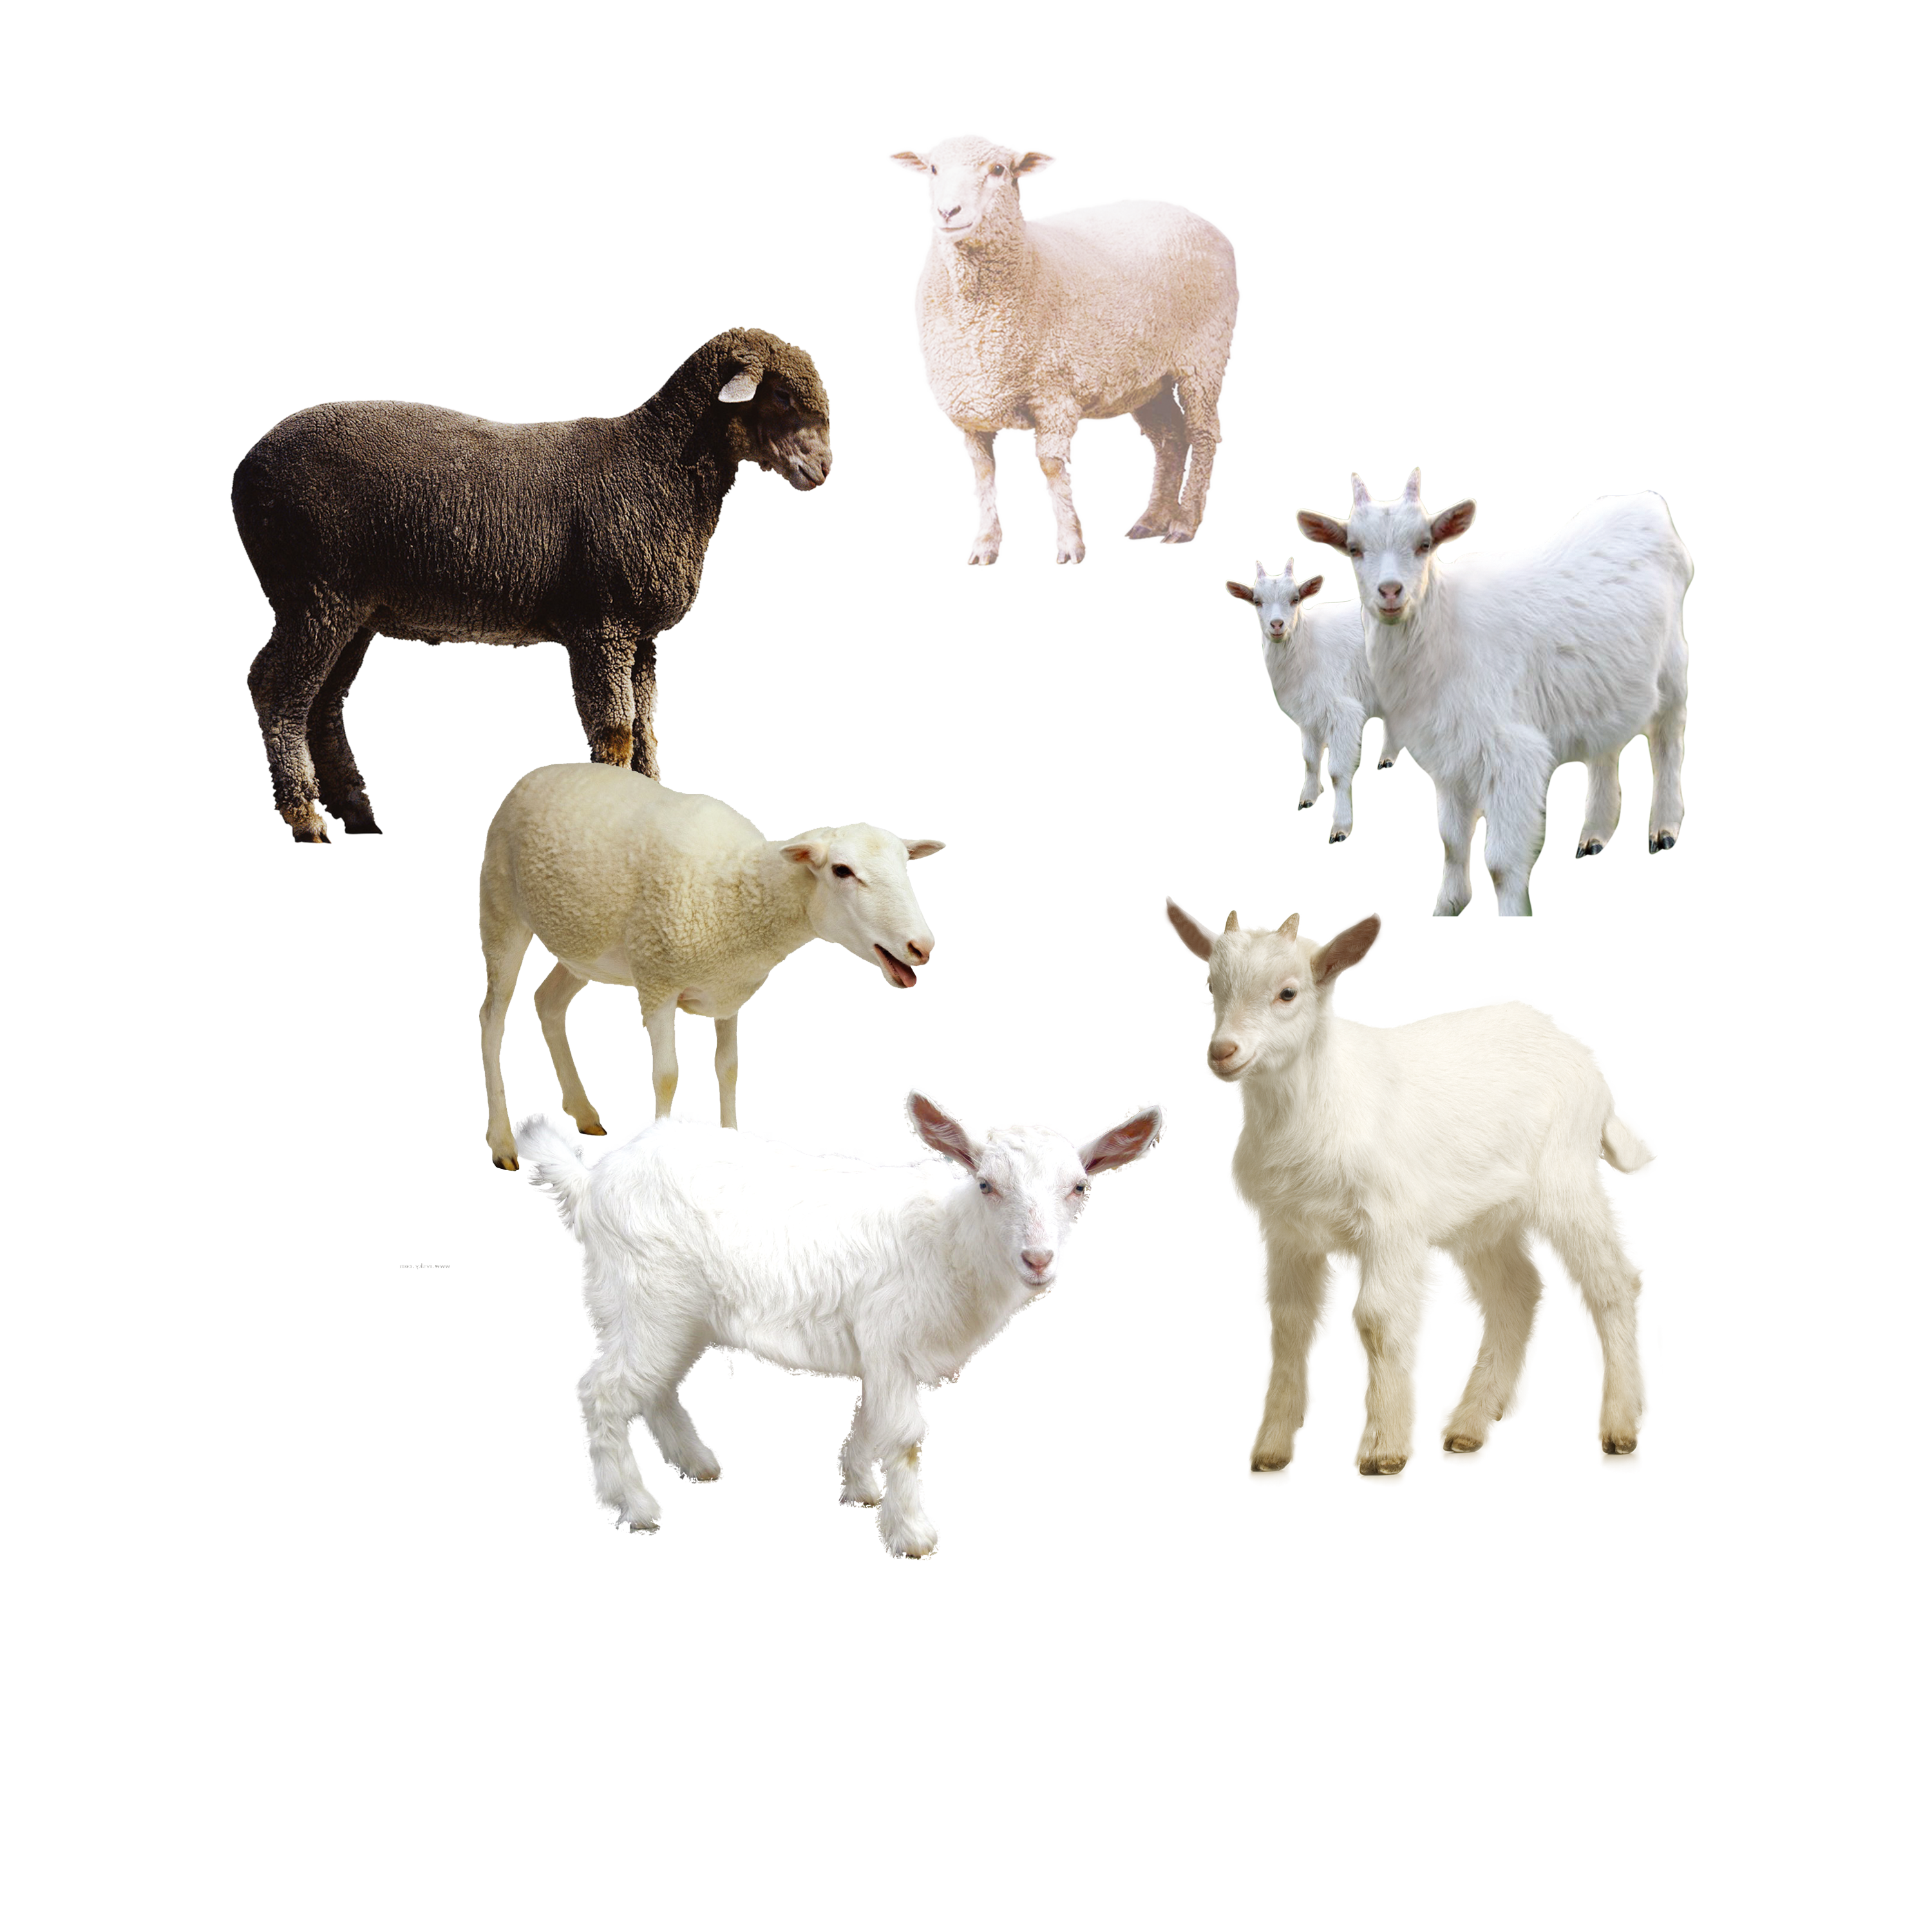 Herd of sheep png. Goat download icon album